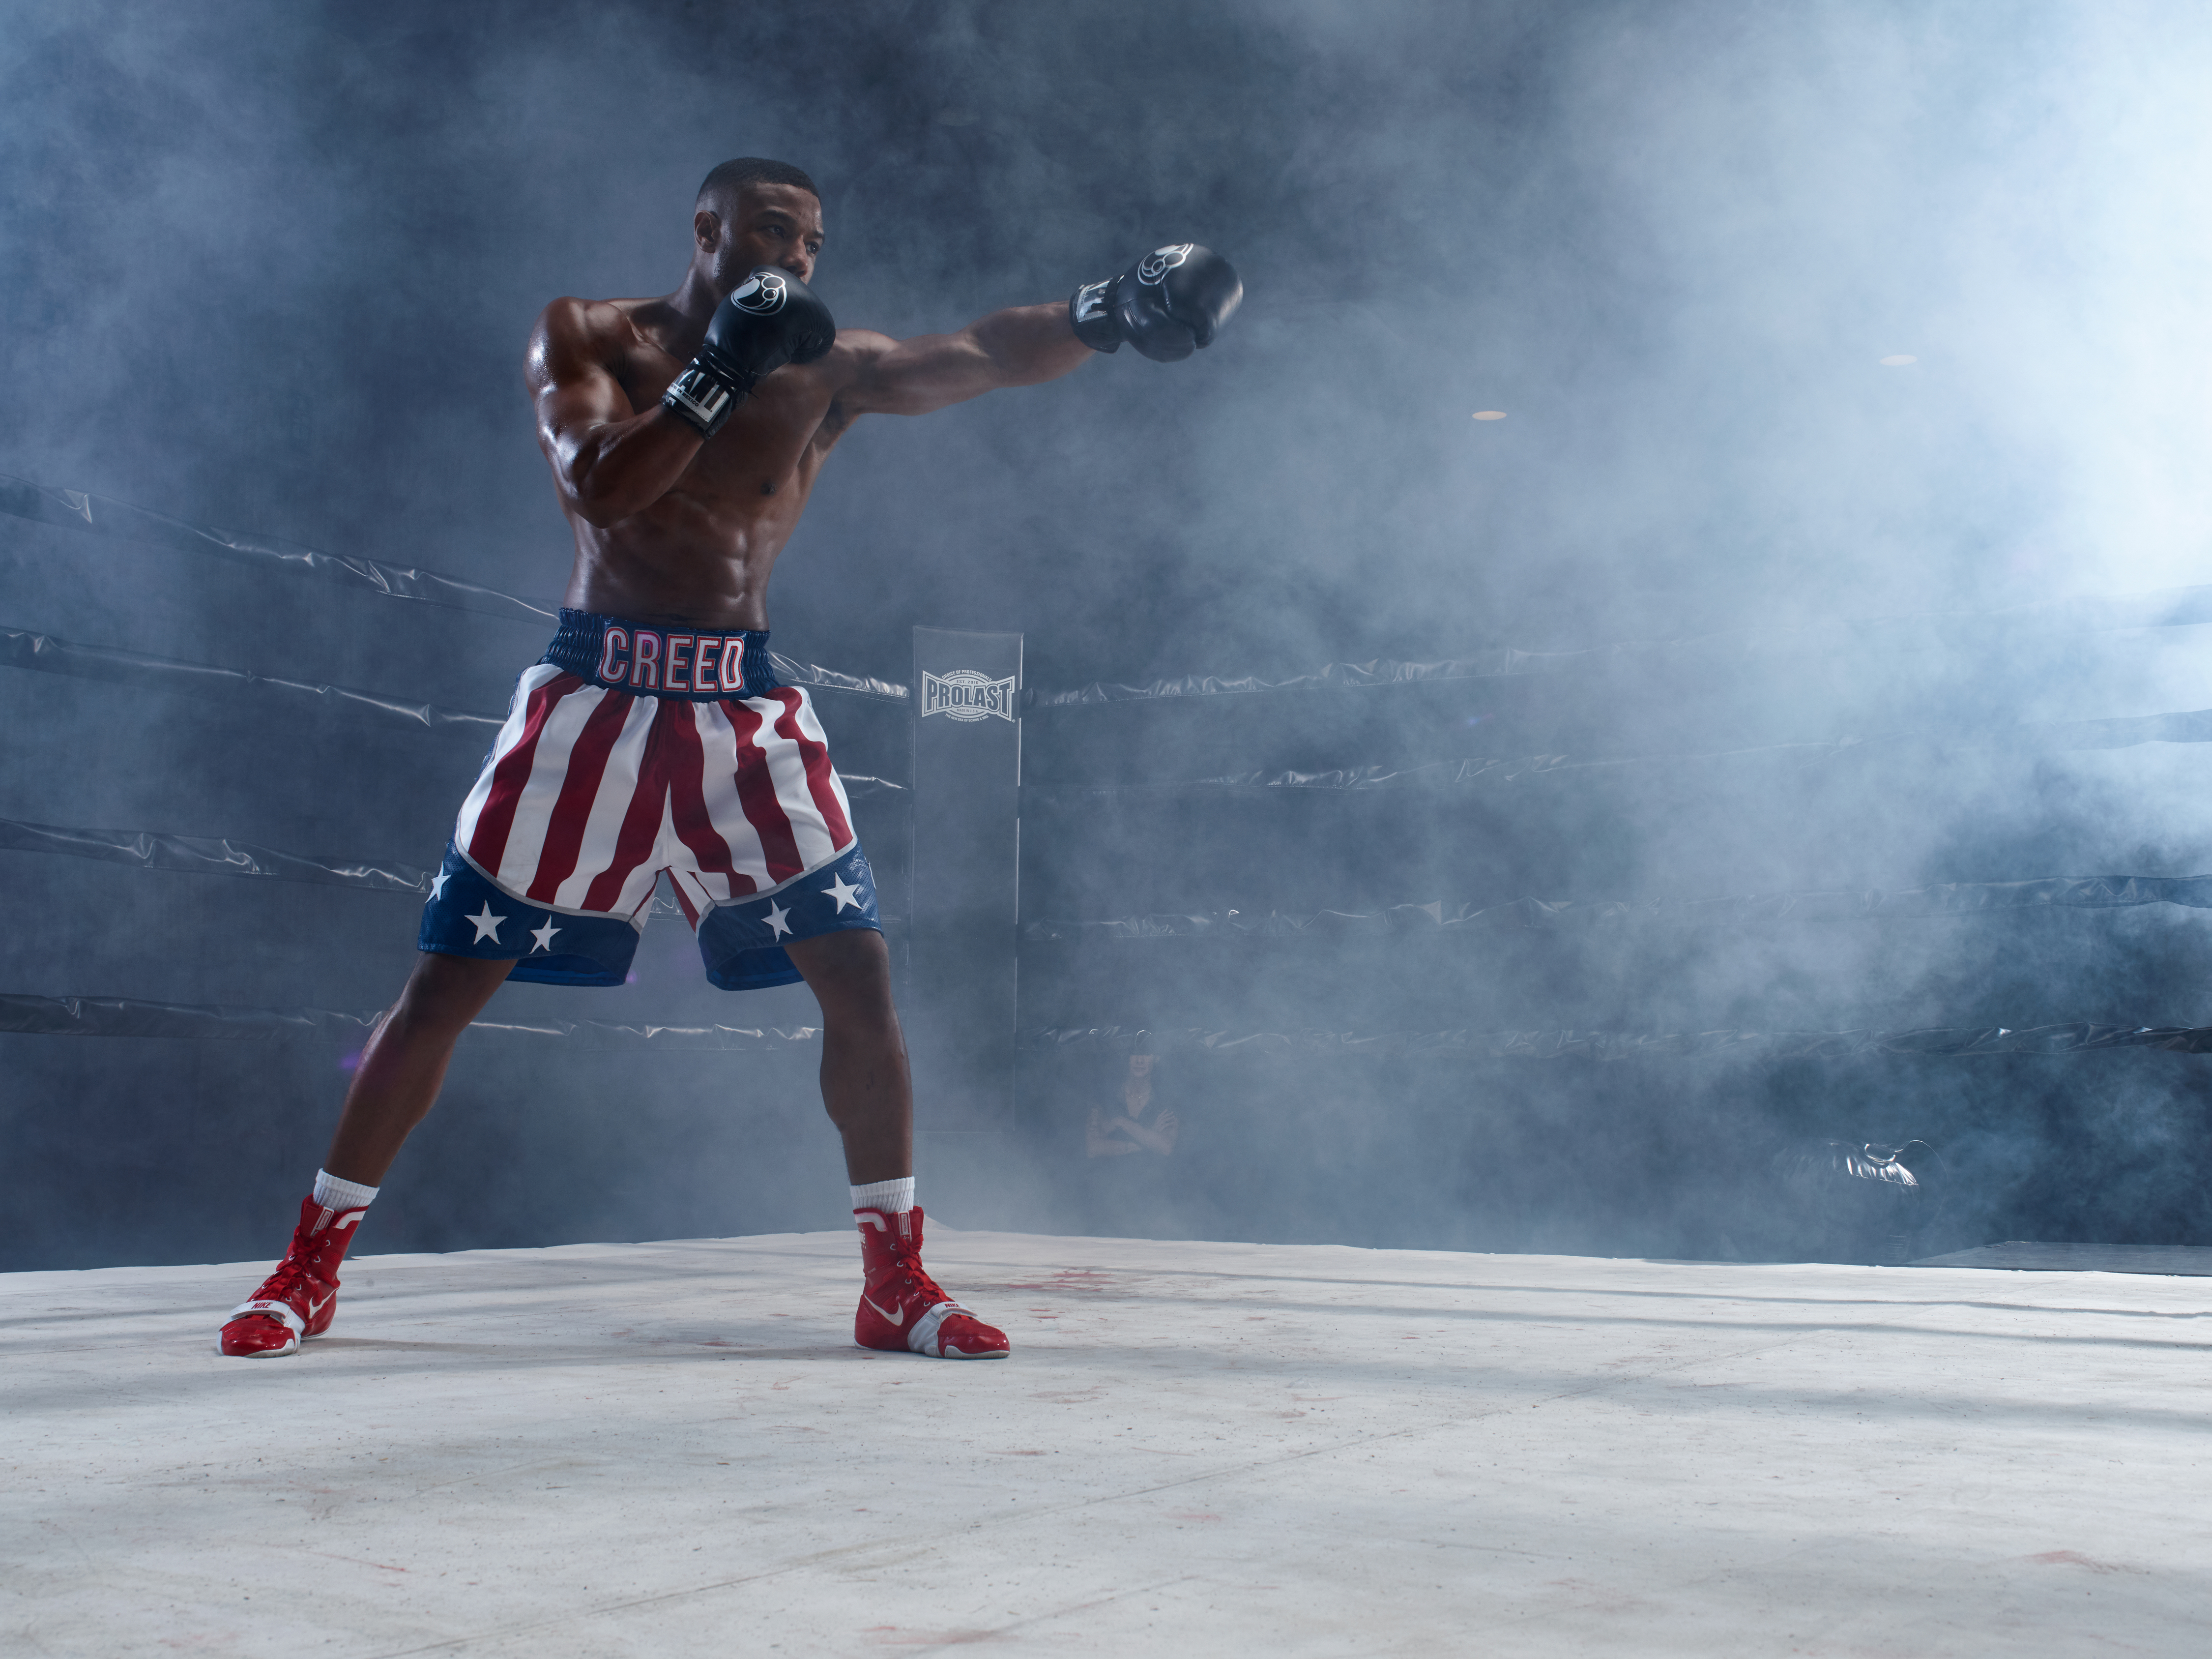 15e27c6b712cf Creed II review: mired in decades of Rocky lore, but still pretty ...